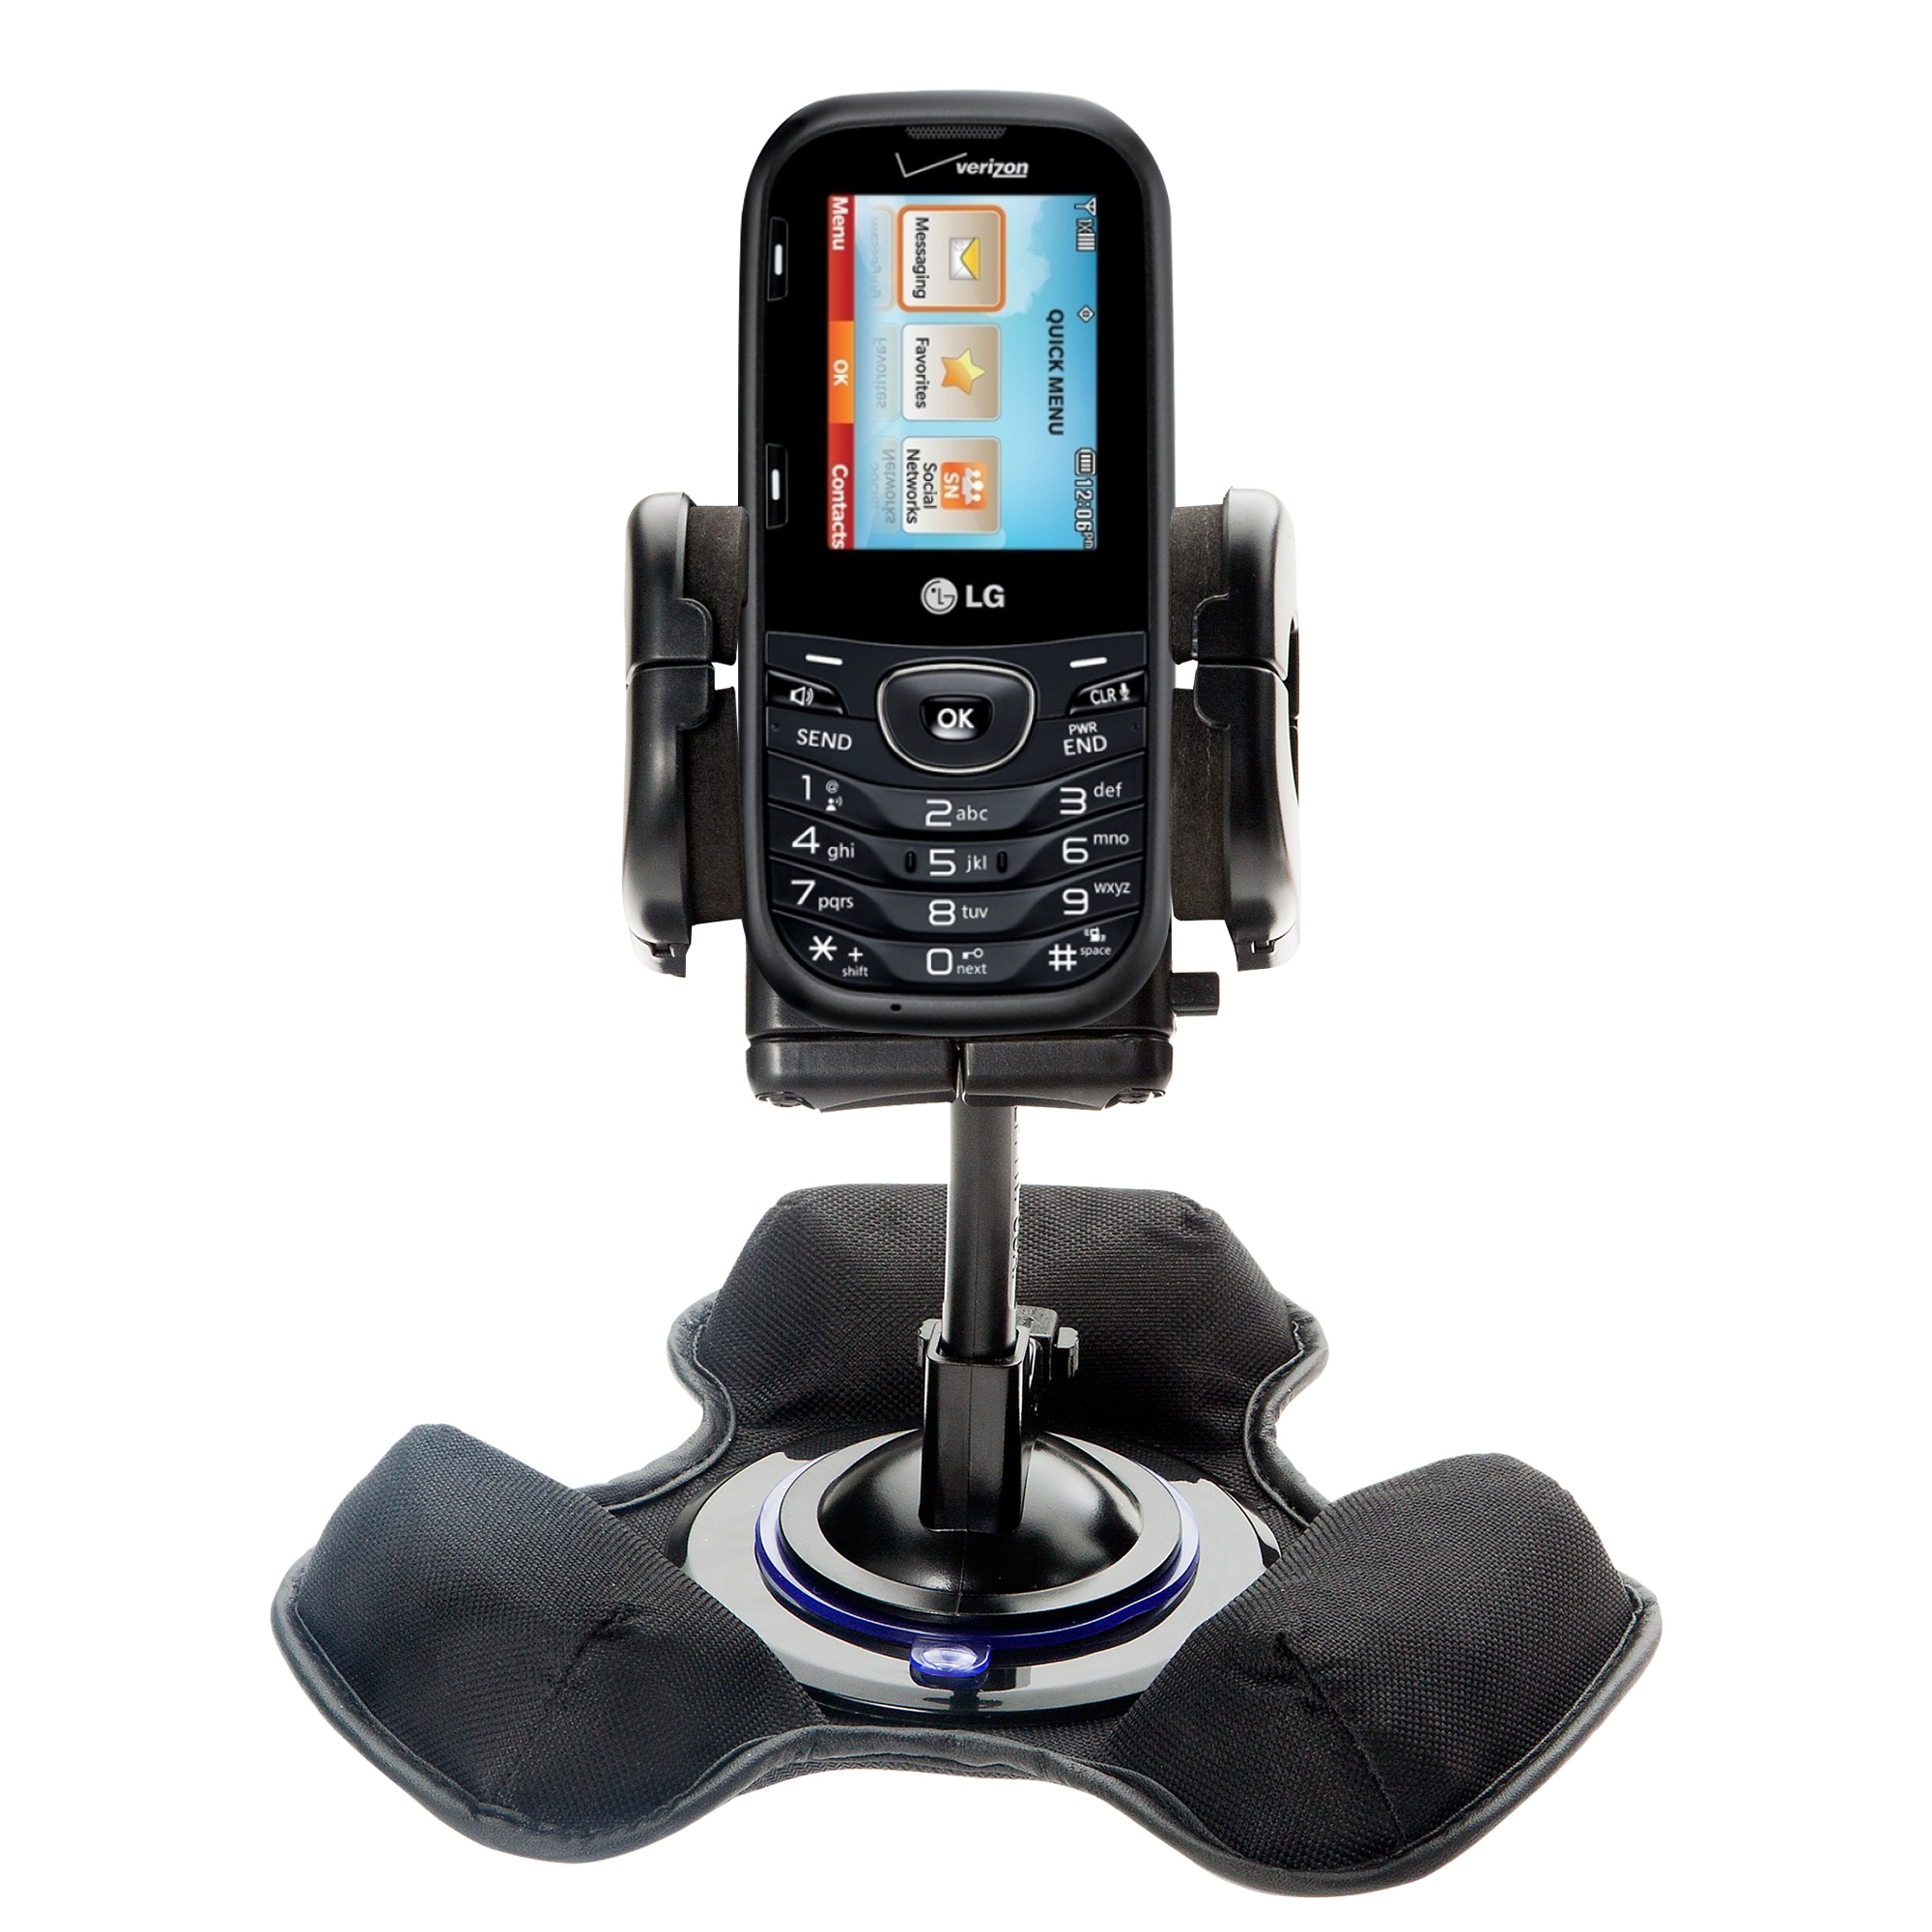 Dash and Windshield Holder compatible with the LG UN251